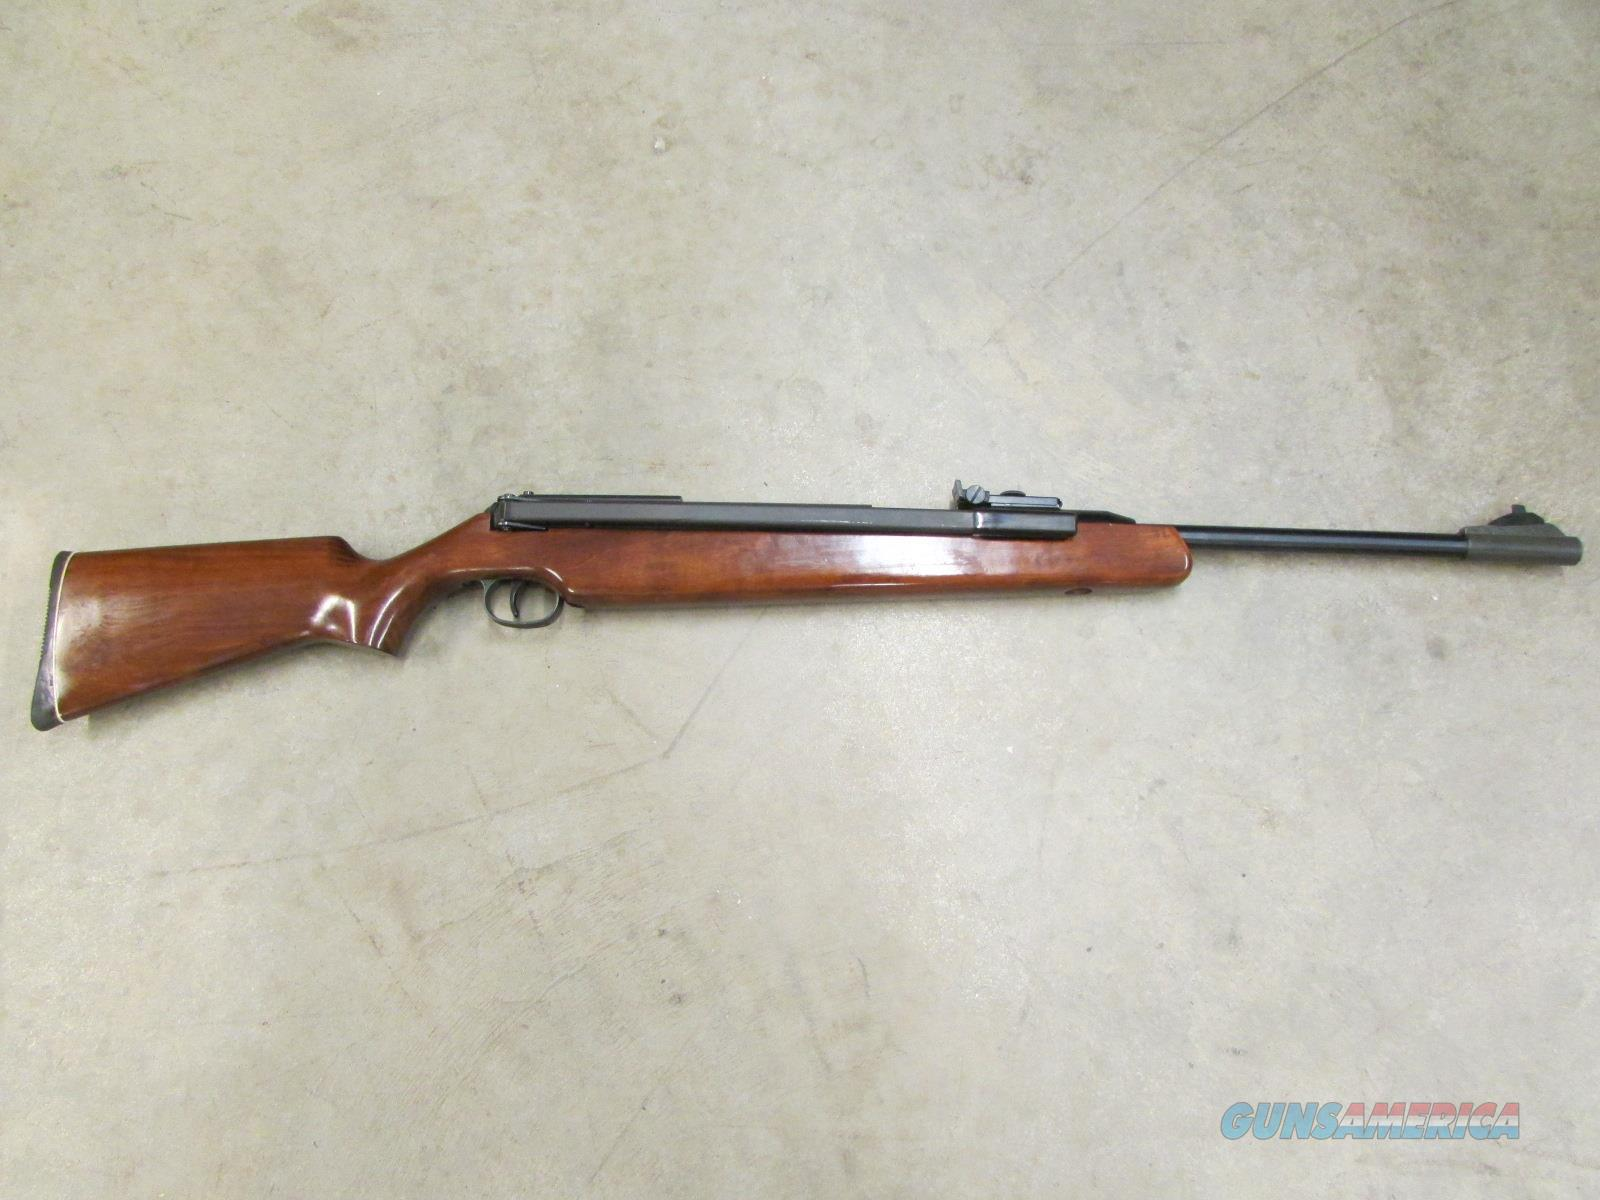 RWS MODEL 48 DIANA SIDE-COCKING AIR RIFLE .177 CALIBER @ 1100 FPS  Non-Guns > Air Rifles - Pistols > Adult High Velocity